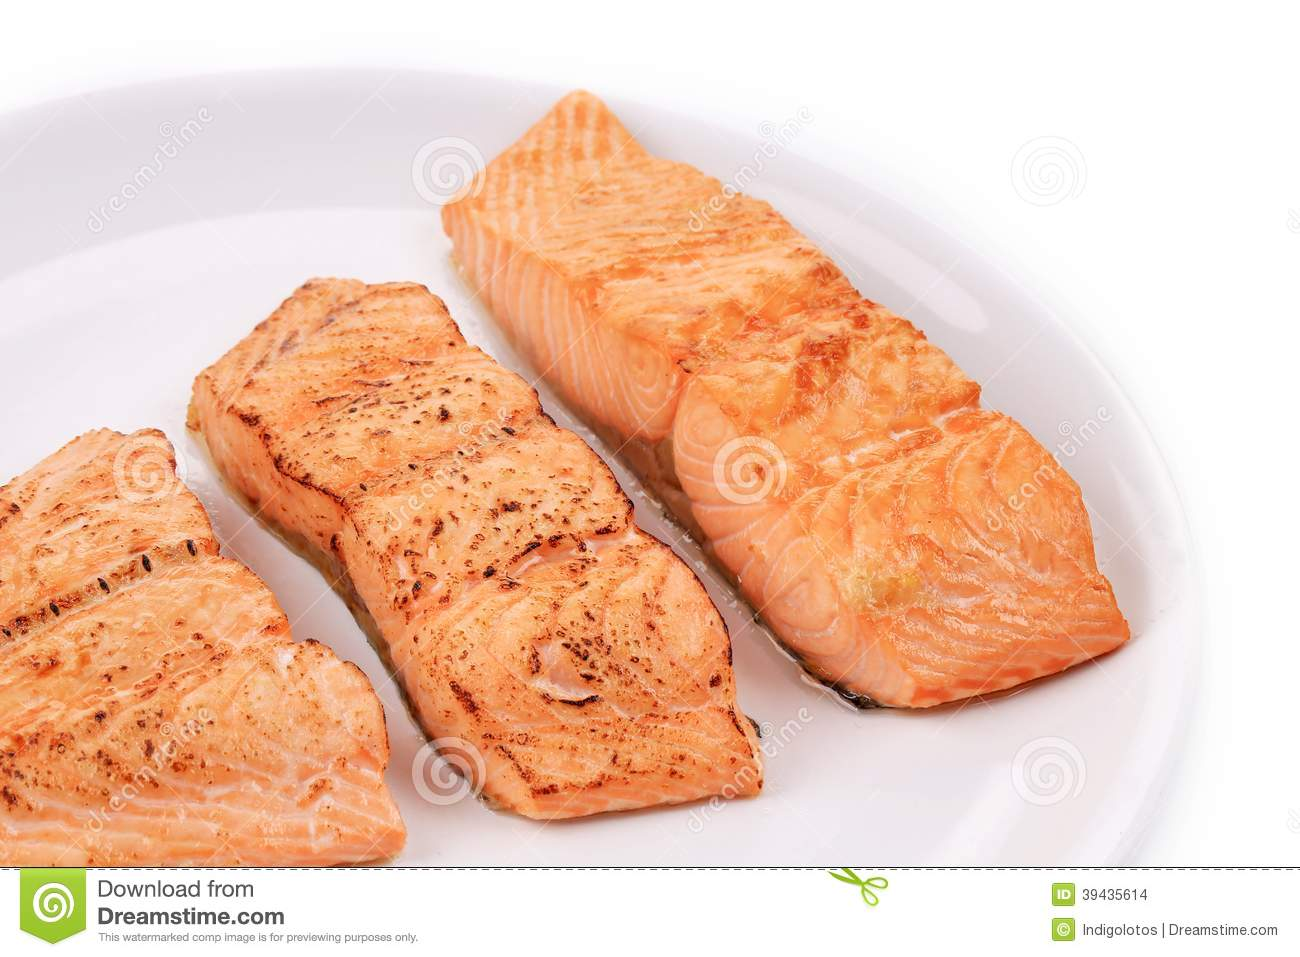 Slices of red fish fillet on plate for Red fish fillet